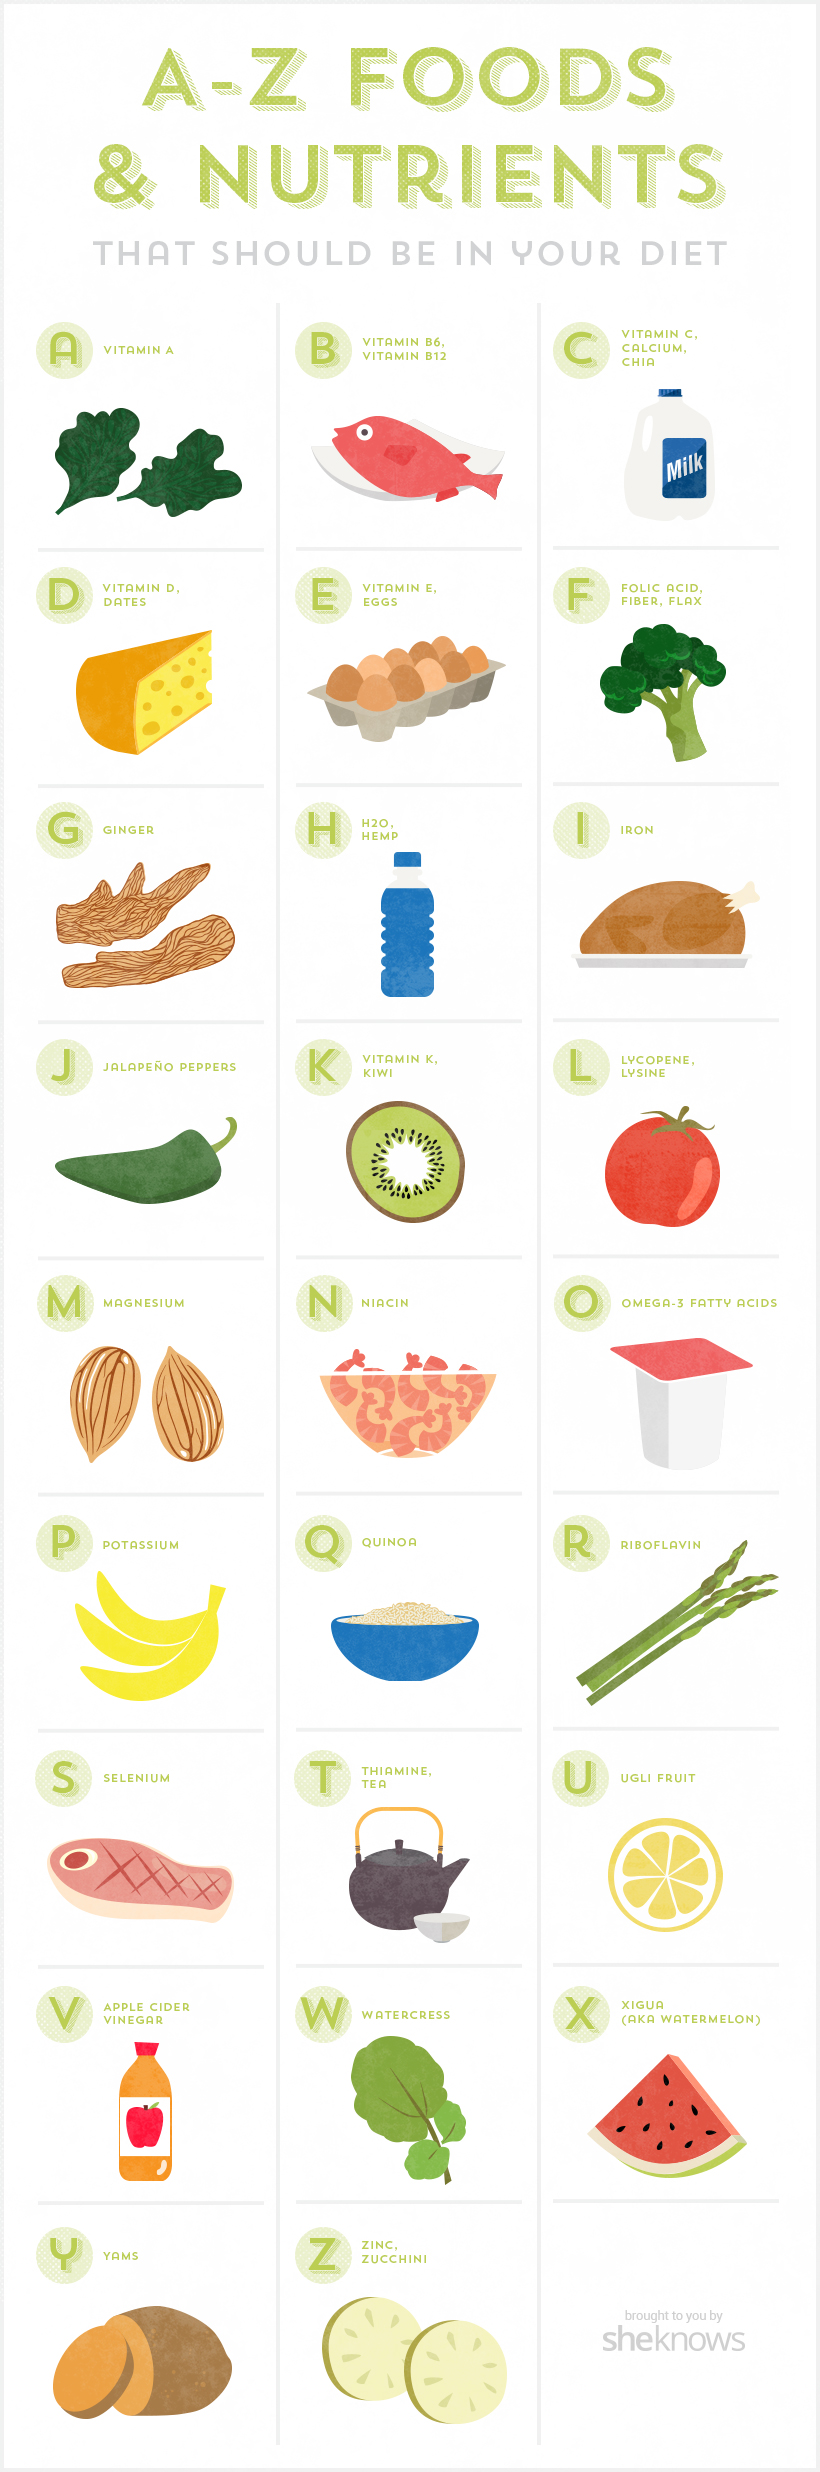 Food and nutrients to eat infographic